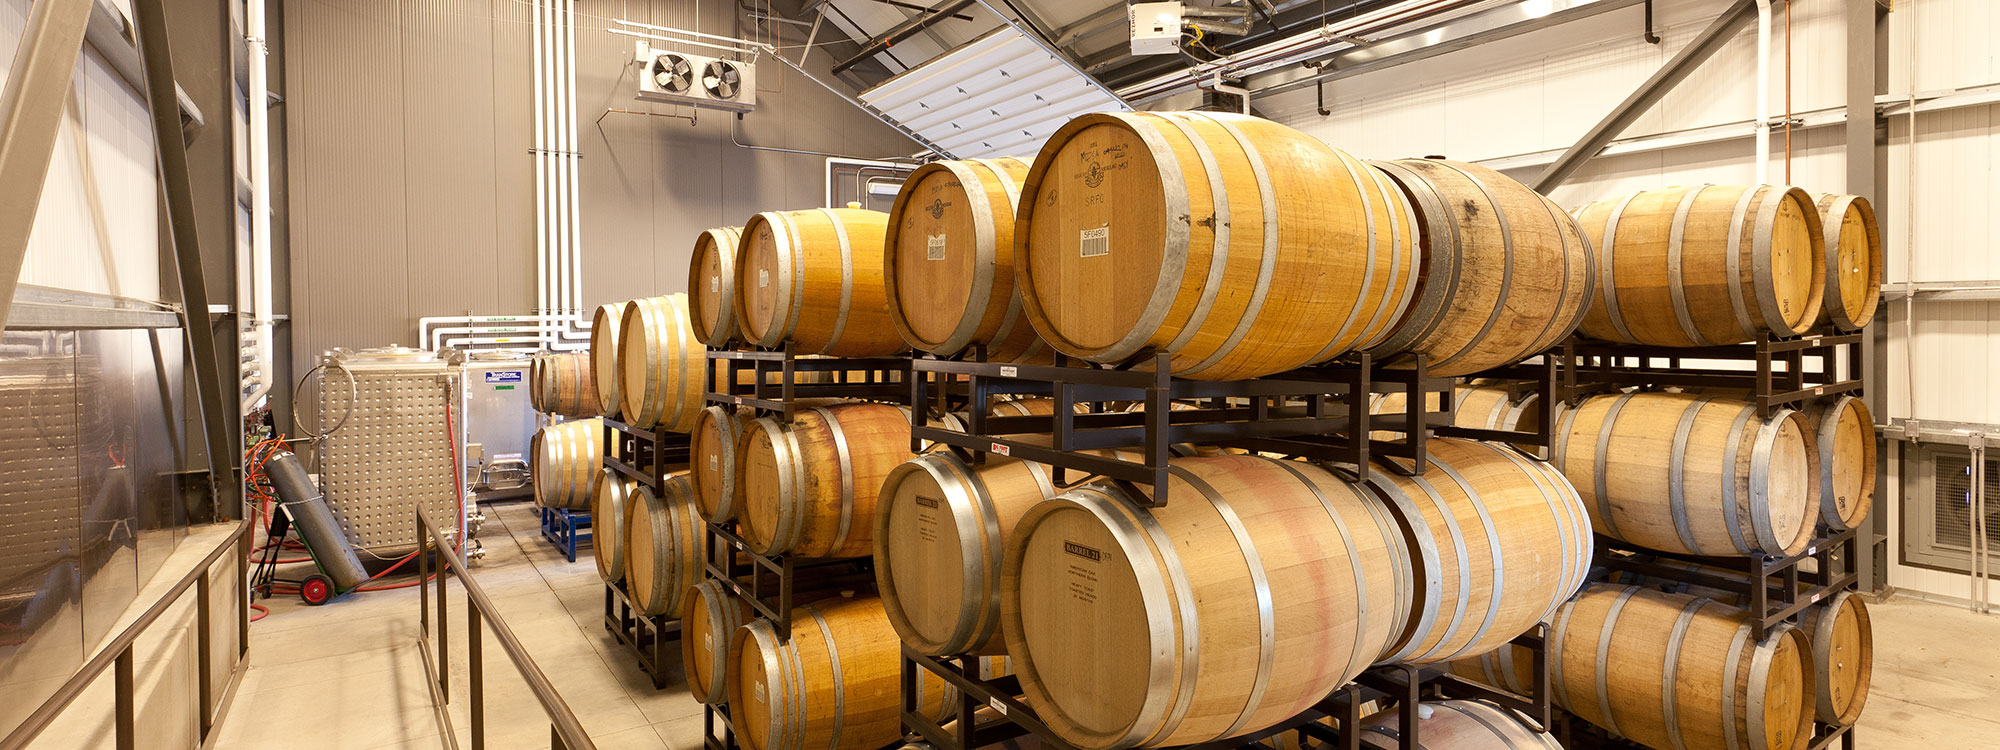 Wine Processing Plant Contractors - Processing Facility Construction - JW Design & Construction